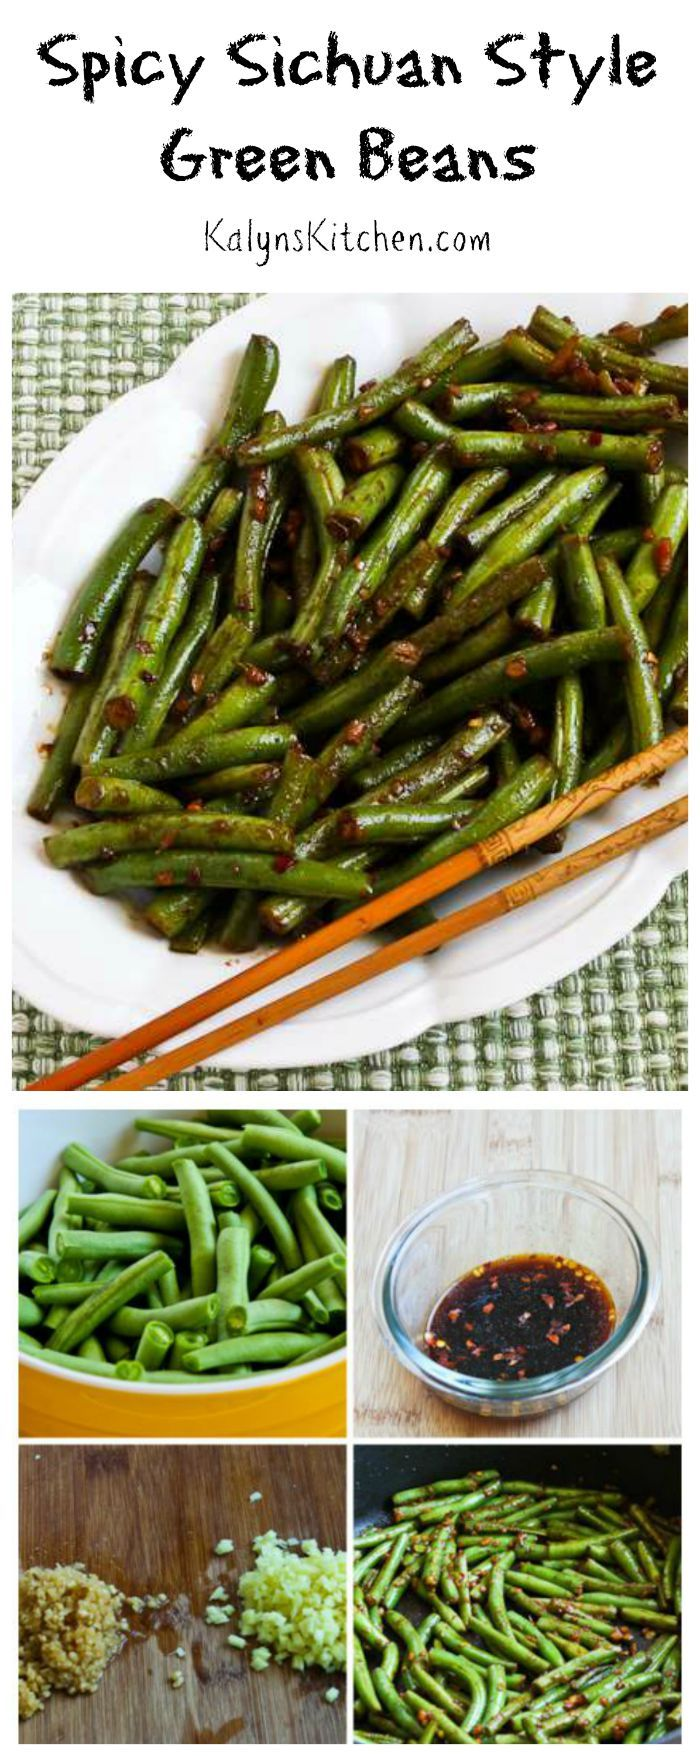 Spicy Sichuan Style Green Beans | Vegetables, Spicy green beans and ...